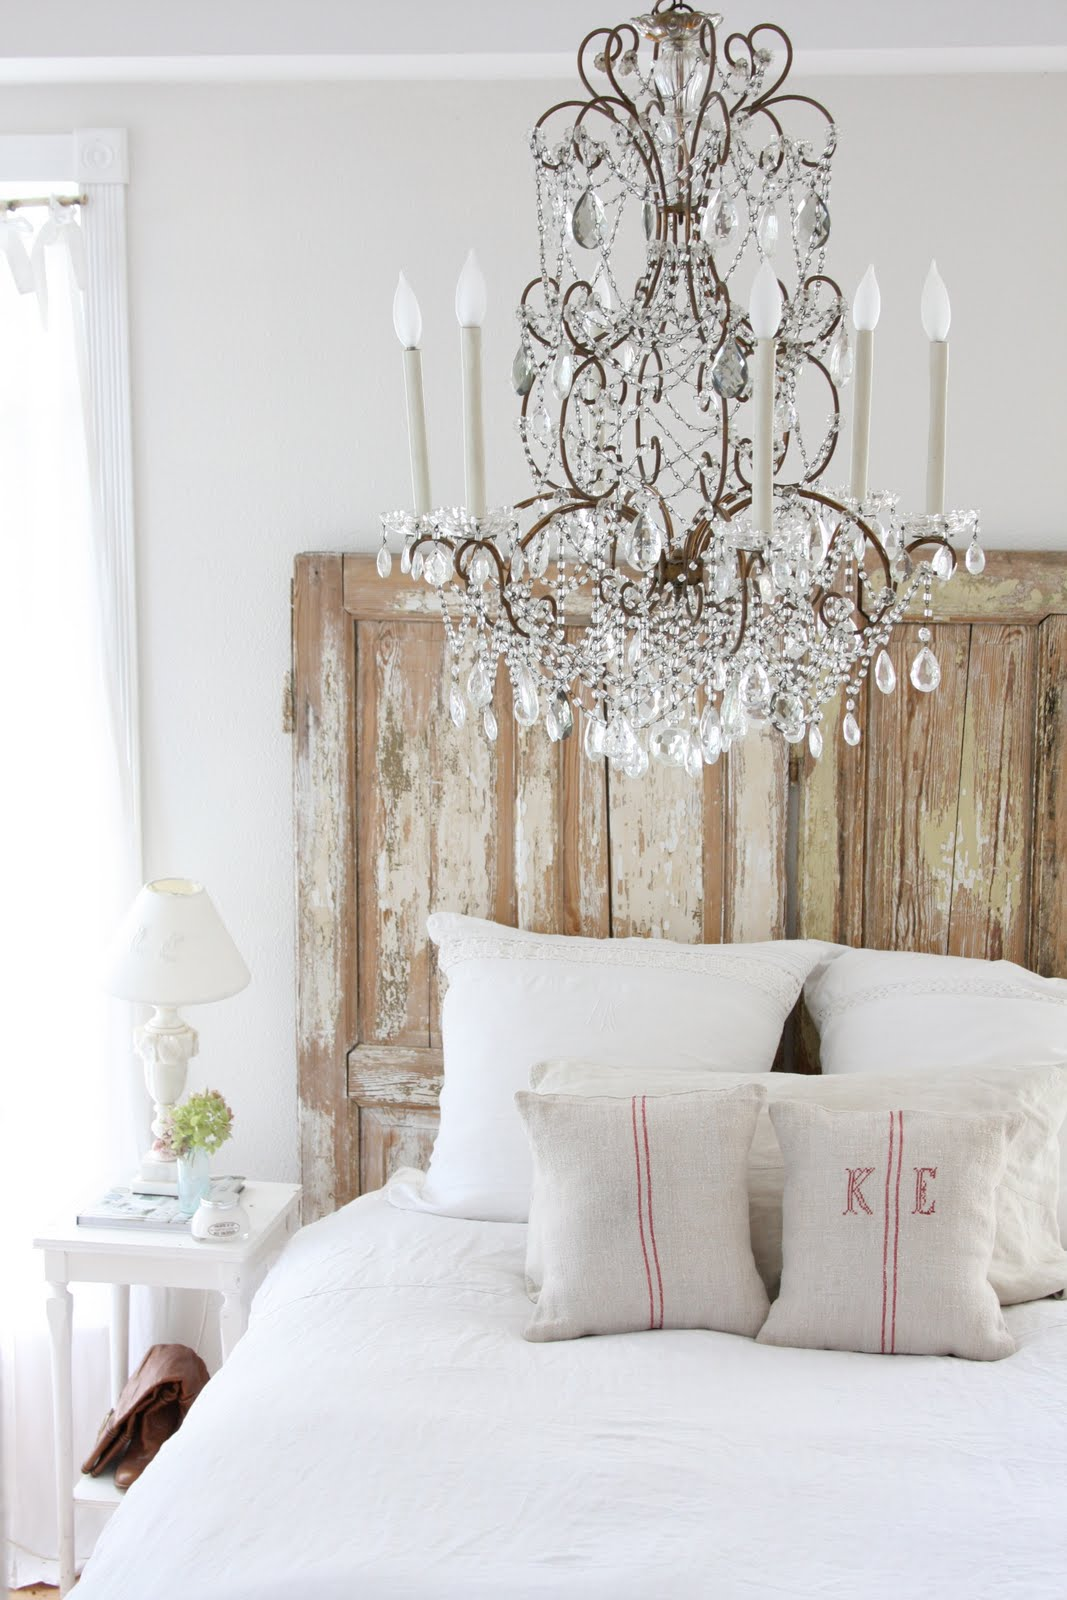 Old Door Headboard Chandelier Over The Bed